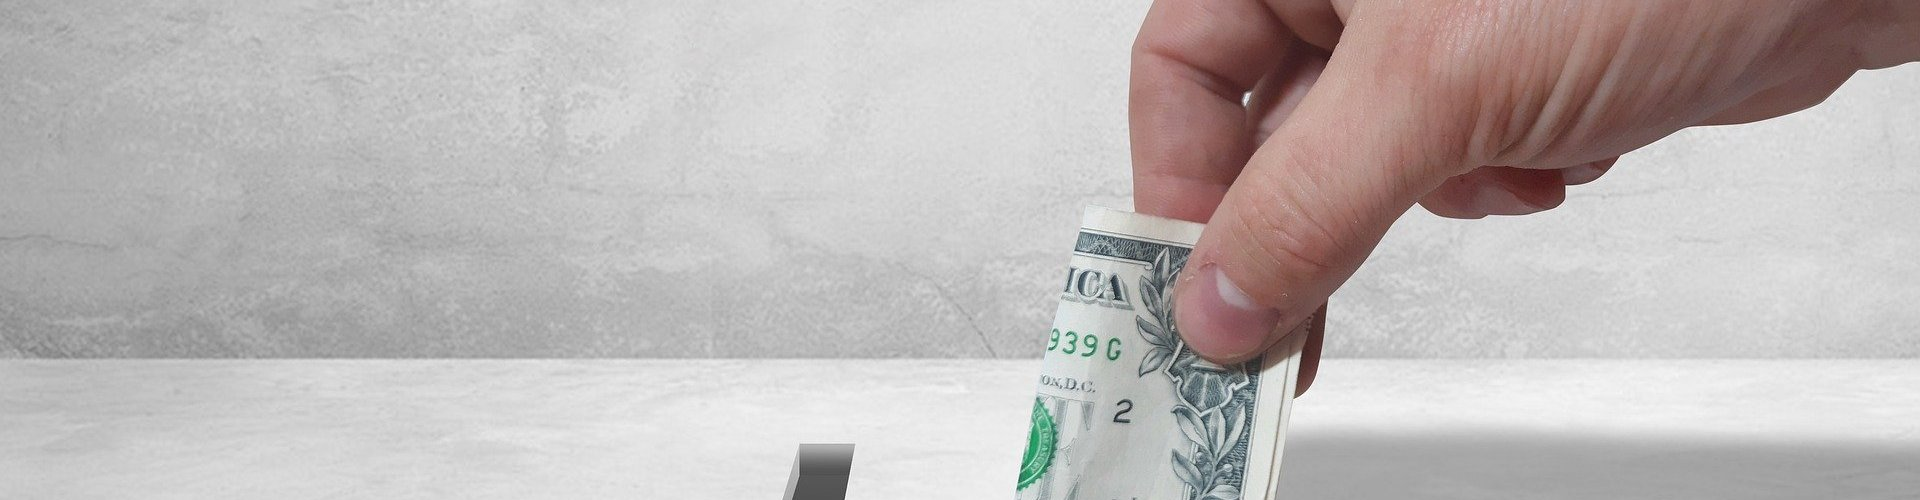 folded dollar being slipped into cross shaped hole